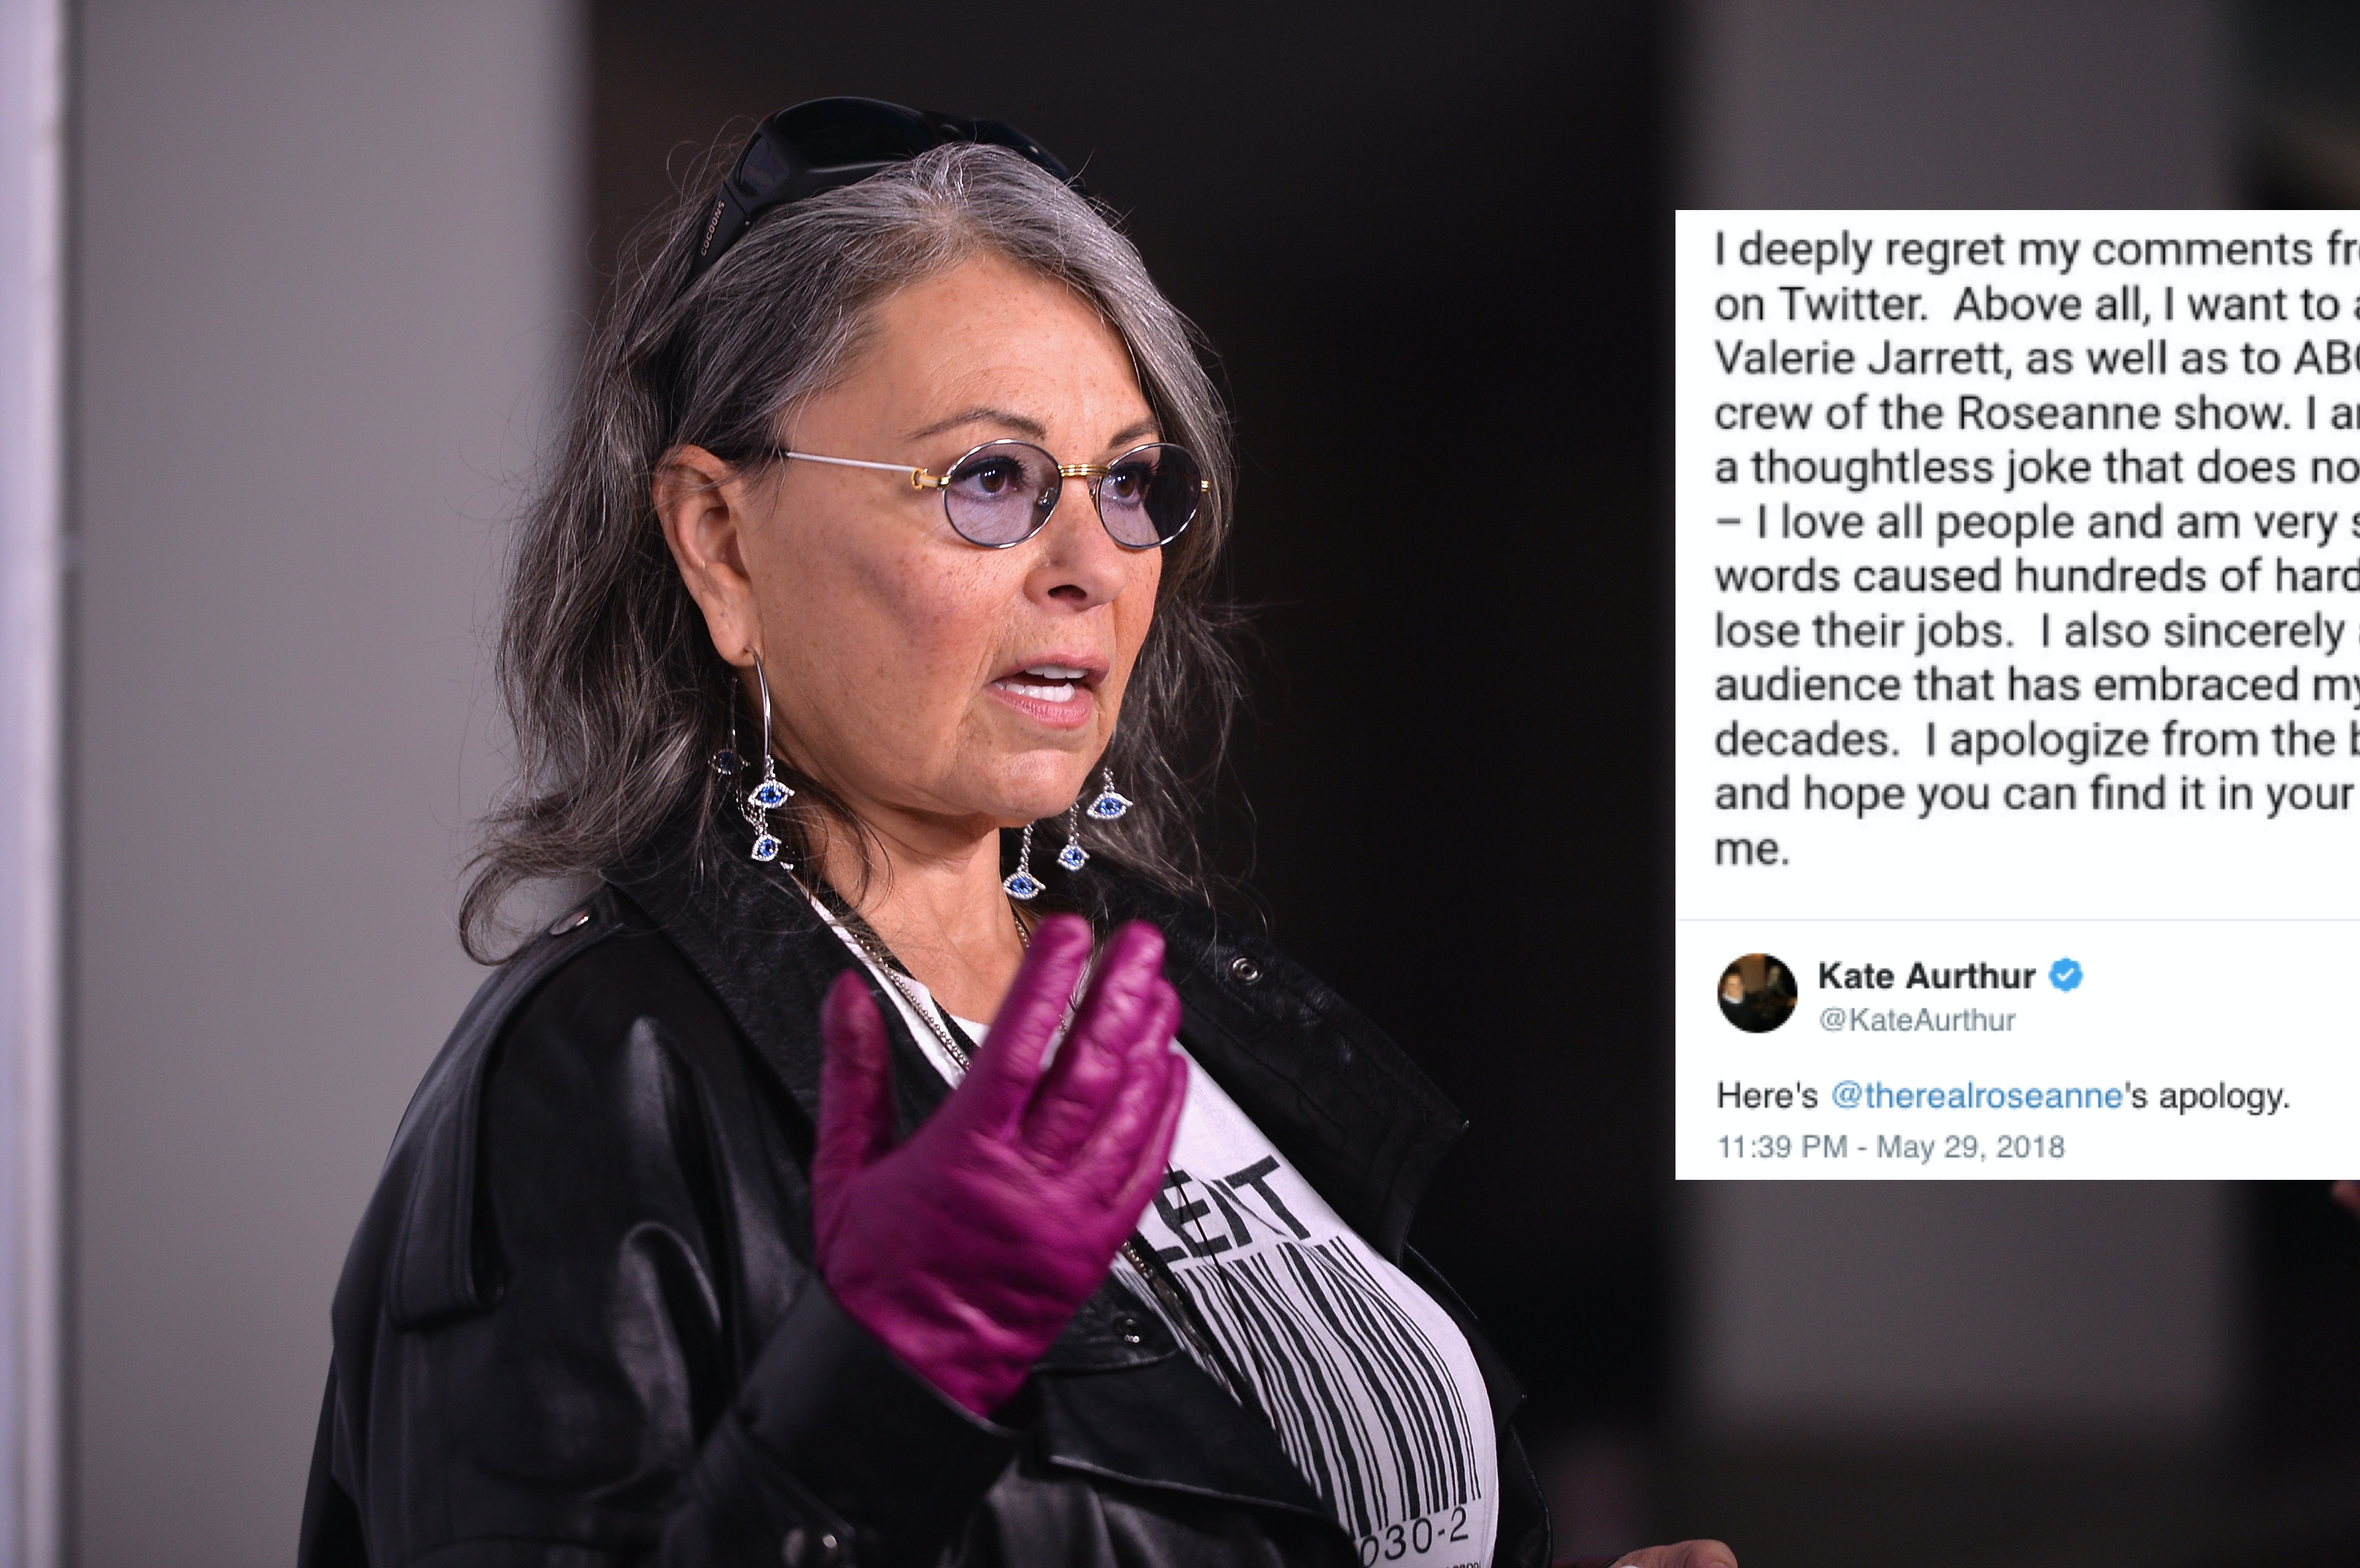 Roseanne Barr s Conflicting Apology Tweets Make The Whole Situation     Roseanne Barr s Conflicting Apology Tweets Make The Whole Situation Even  More Confusing